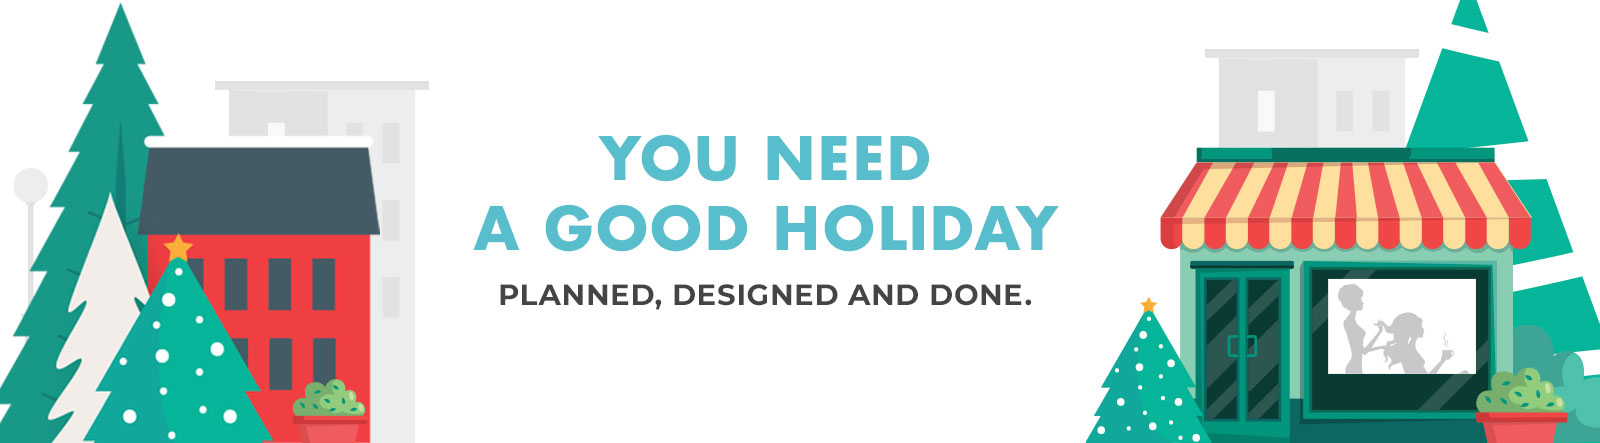 You need a good holiday